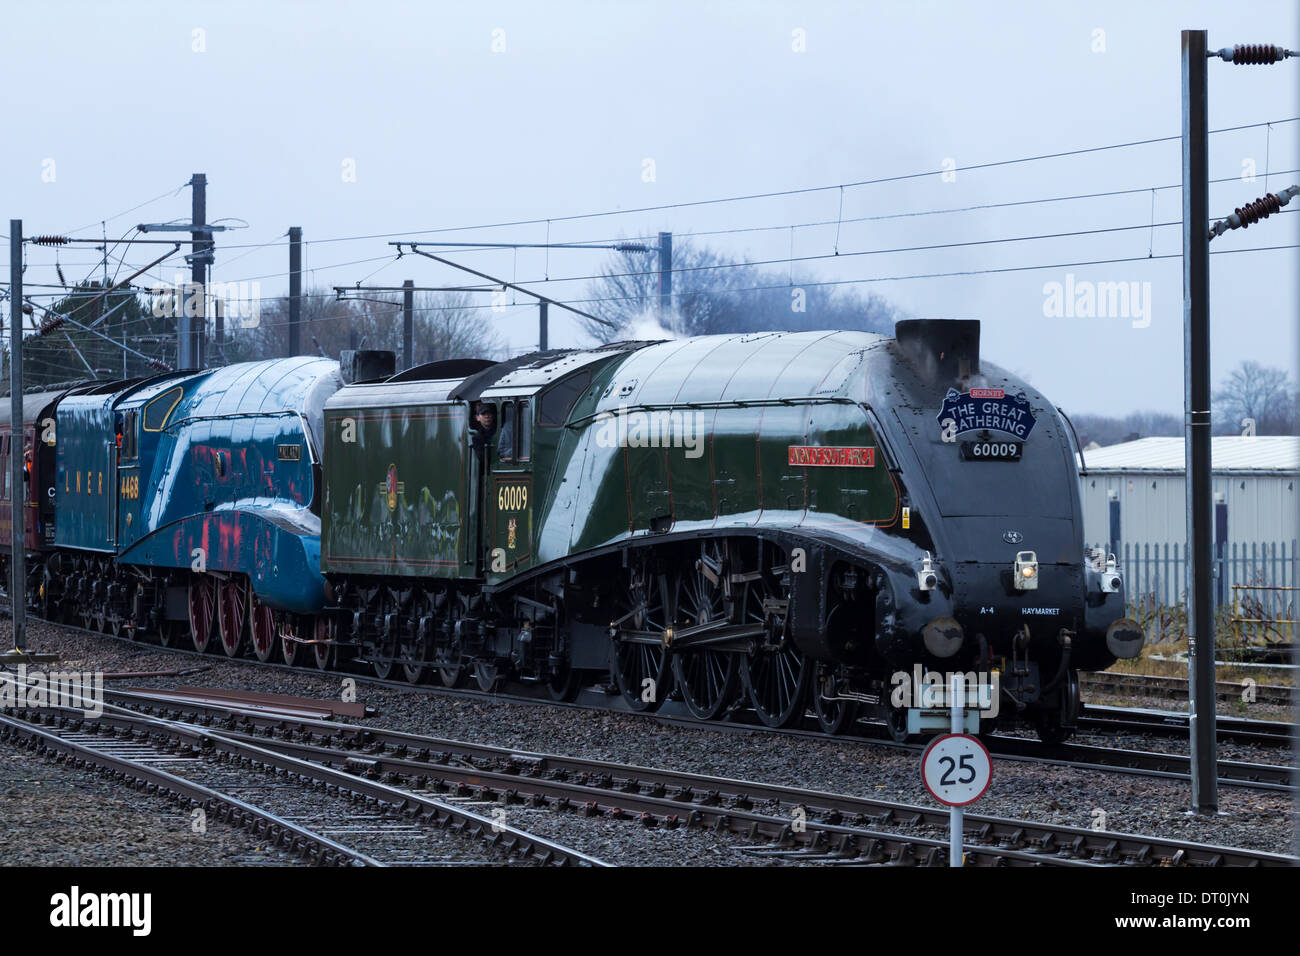 Mallard, being pulled by Union of South Africa steam locomotive. UK - Stock Image